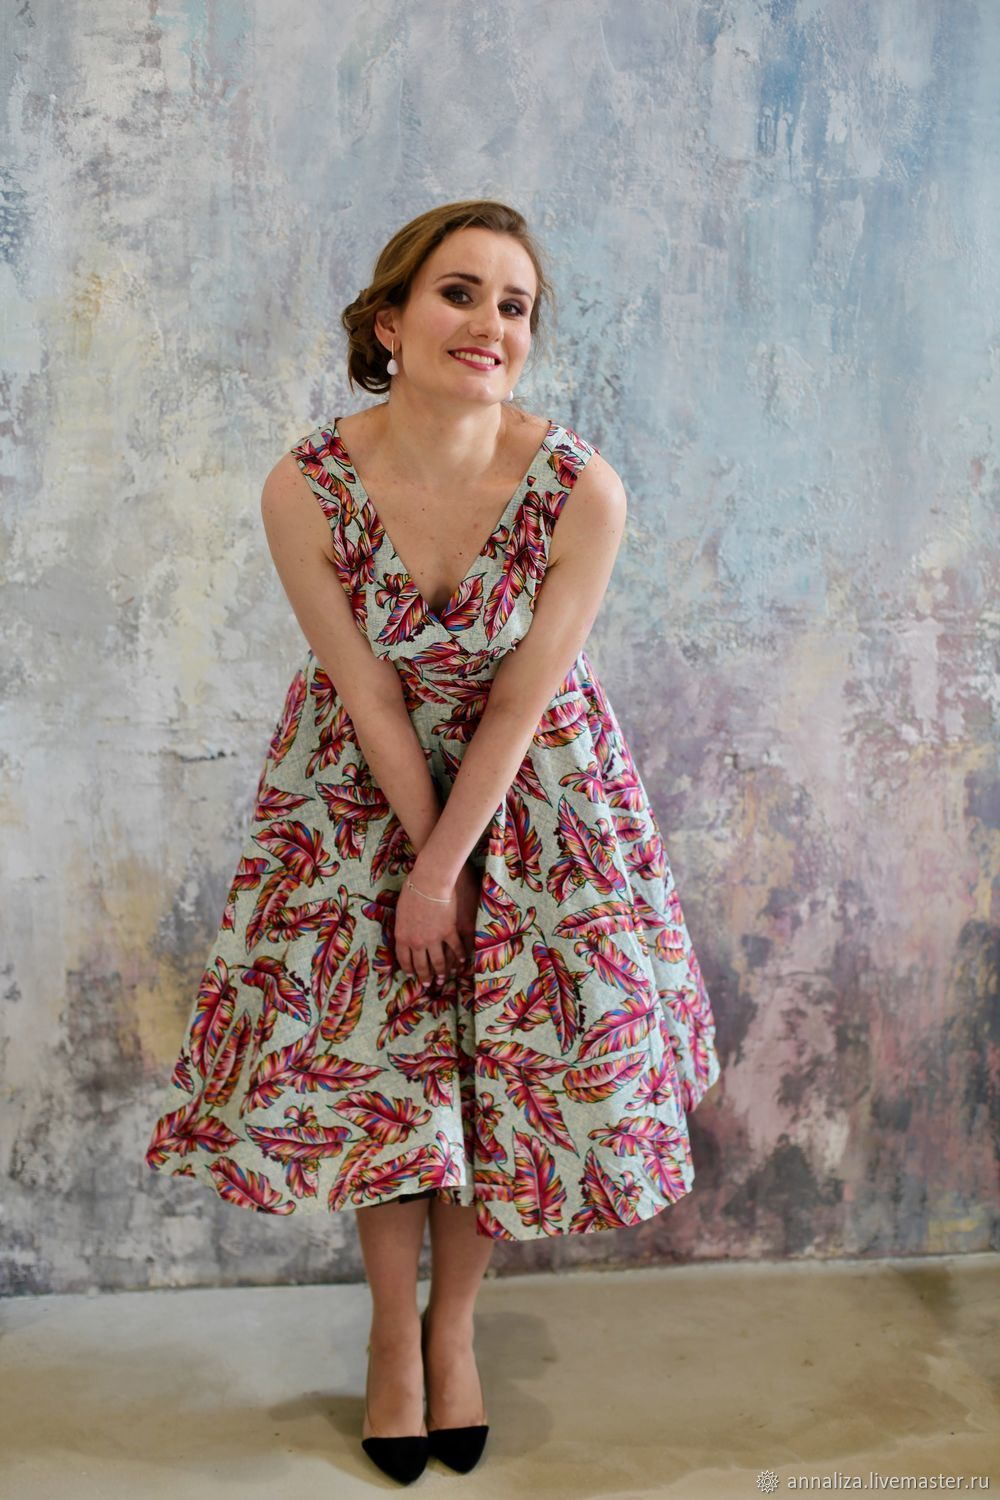 Retro dress in the style of the 50s 'Urban tropics', Dresses, Moscow,  Фото №1